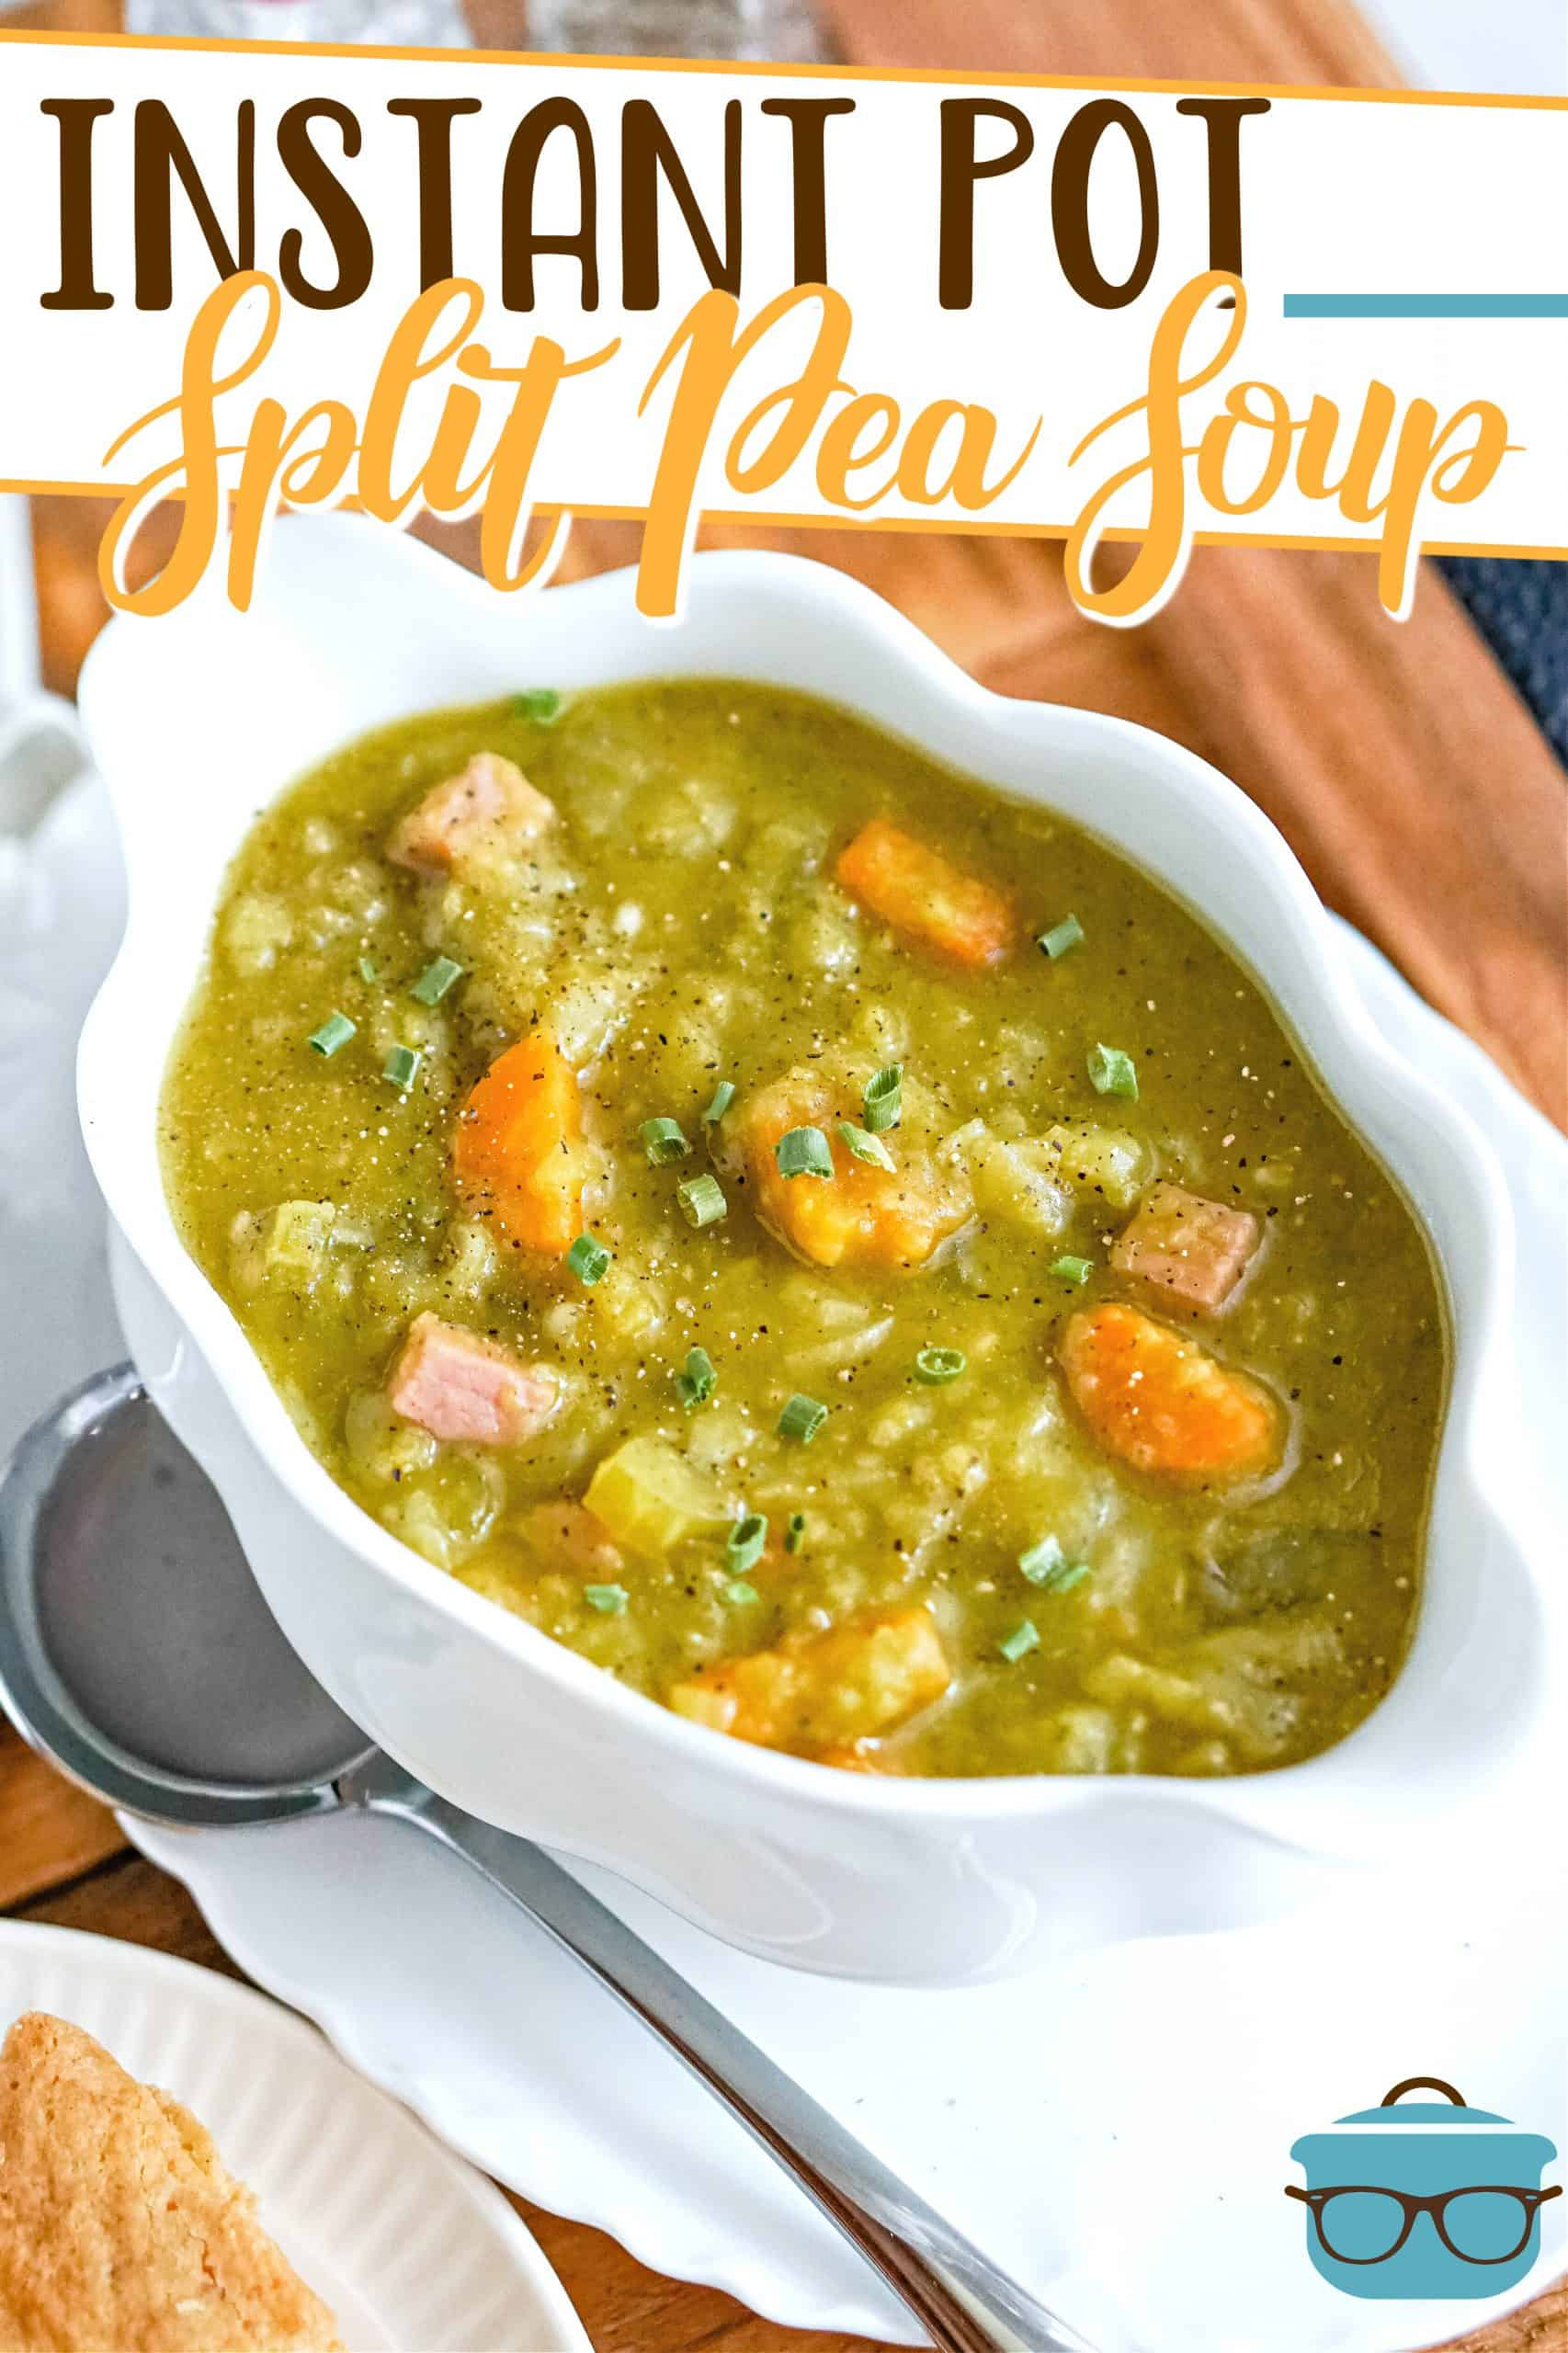 This recipe for Instant Pot Split Pea soup is creamy, smoky and super flavorful soup. It's a one pot wonder that's ready in about 30 minutes!